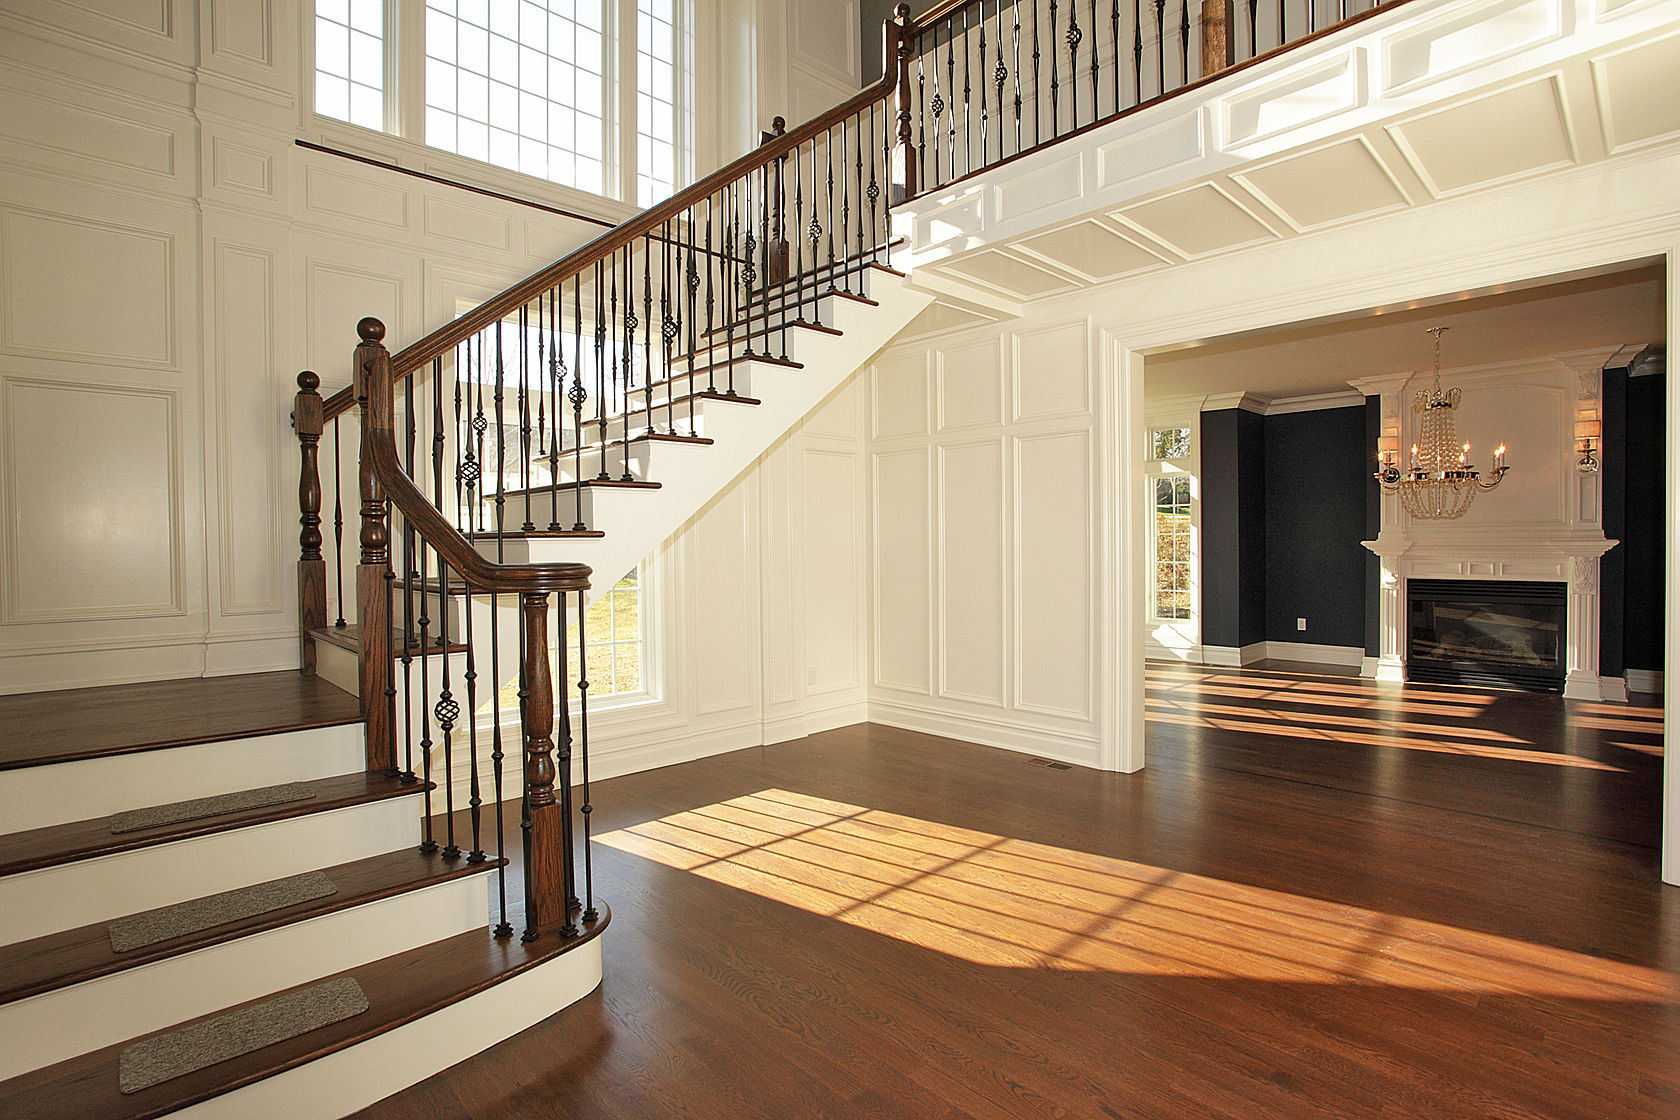 Stair Hall, Rumson NJ